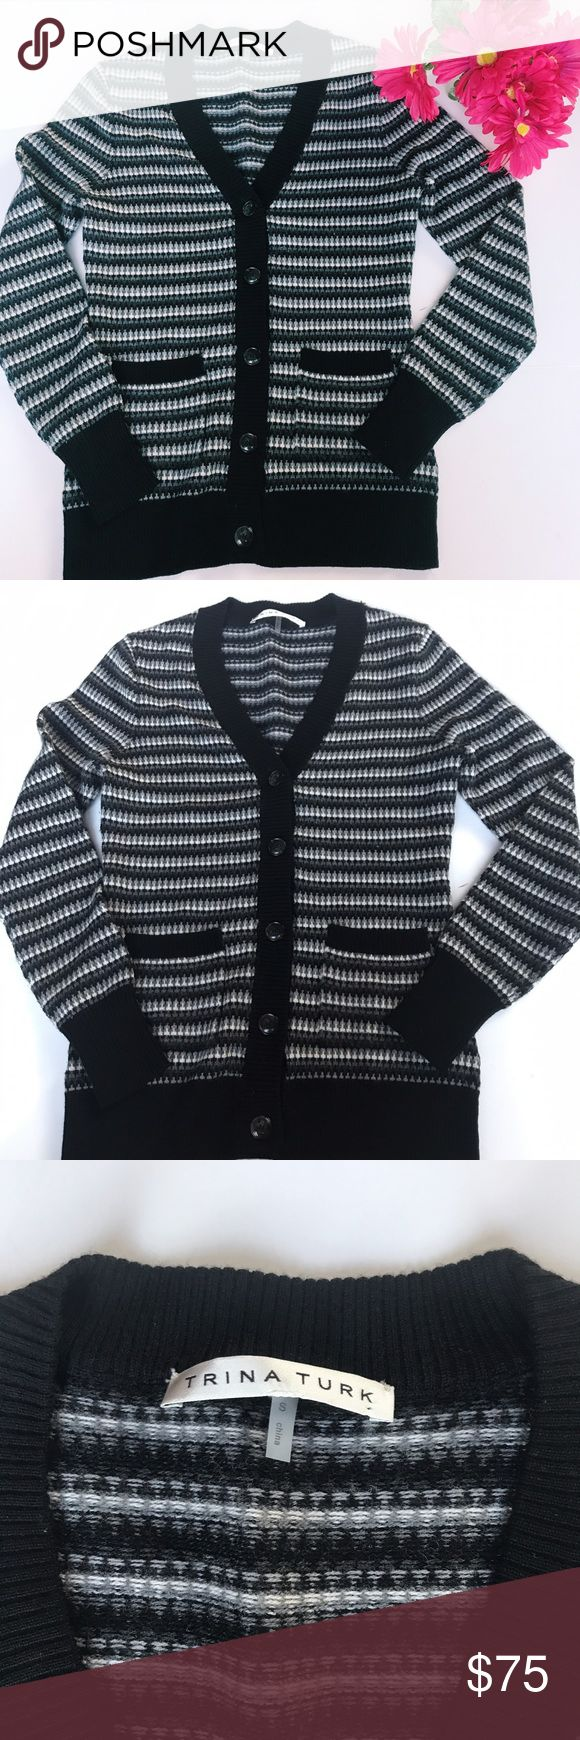 "Trina Turk Striped Sweater Knit Wool Cardigan Timeless Trina Turk cardigan sweater! I'm not really sure how to describe this pattern, kinda of stripes? See images! In amazing condition, looks new. Pit to pit 19"". Length 26"". ::71 Trina Turk Sweaters Cardigans"